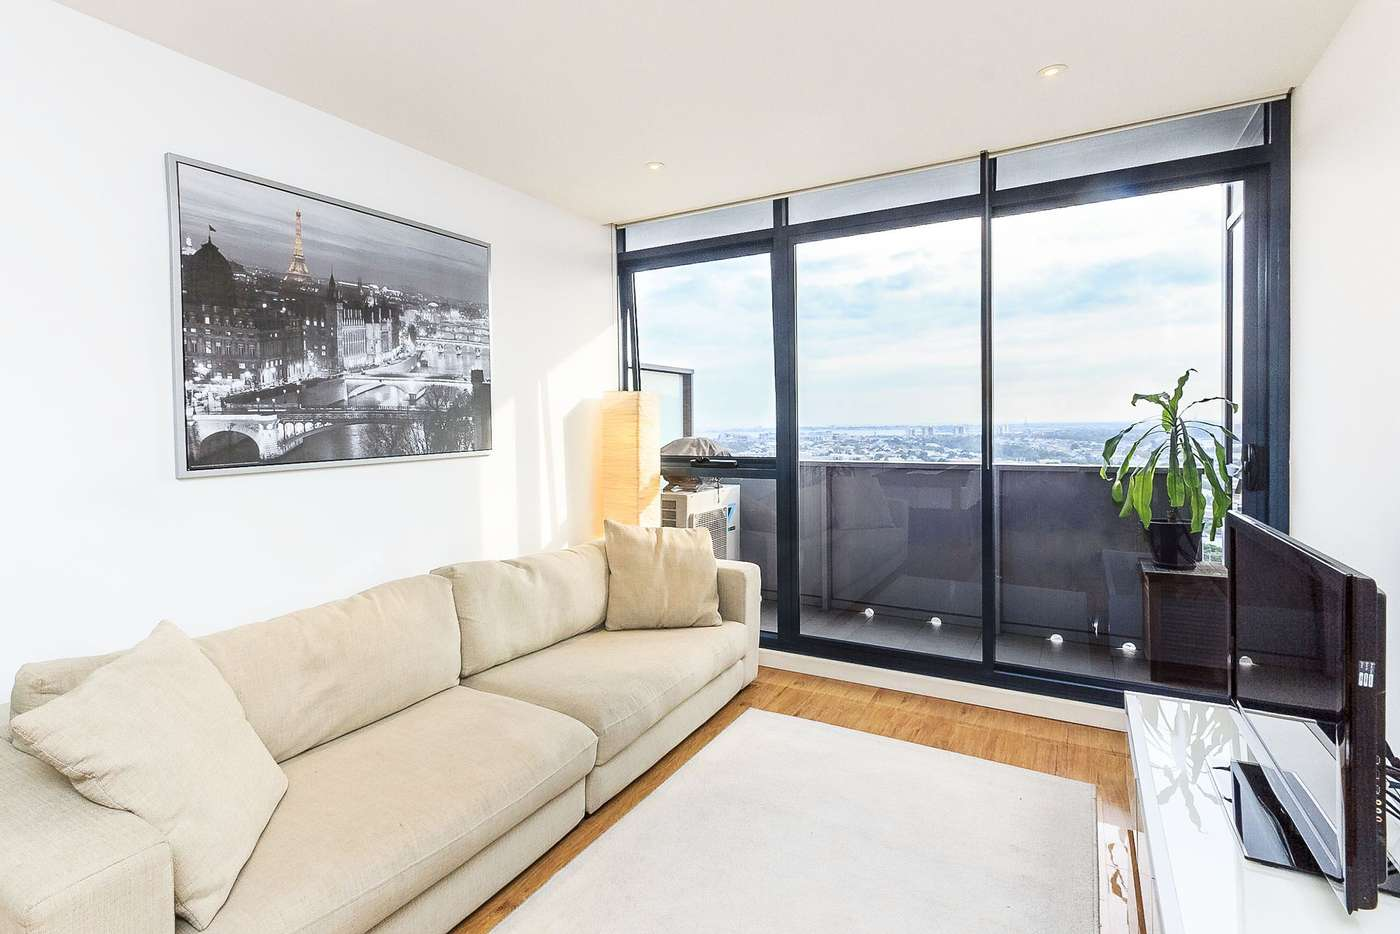 Main view of Homely apartment listing, 2104/109 Clarendon Street, South Melbourne, VIC 3205